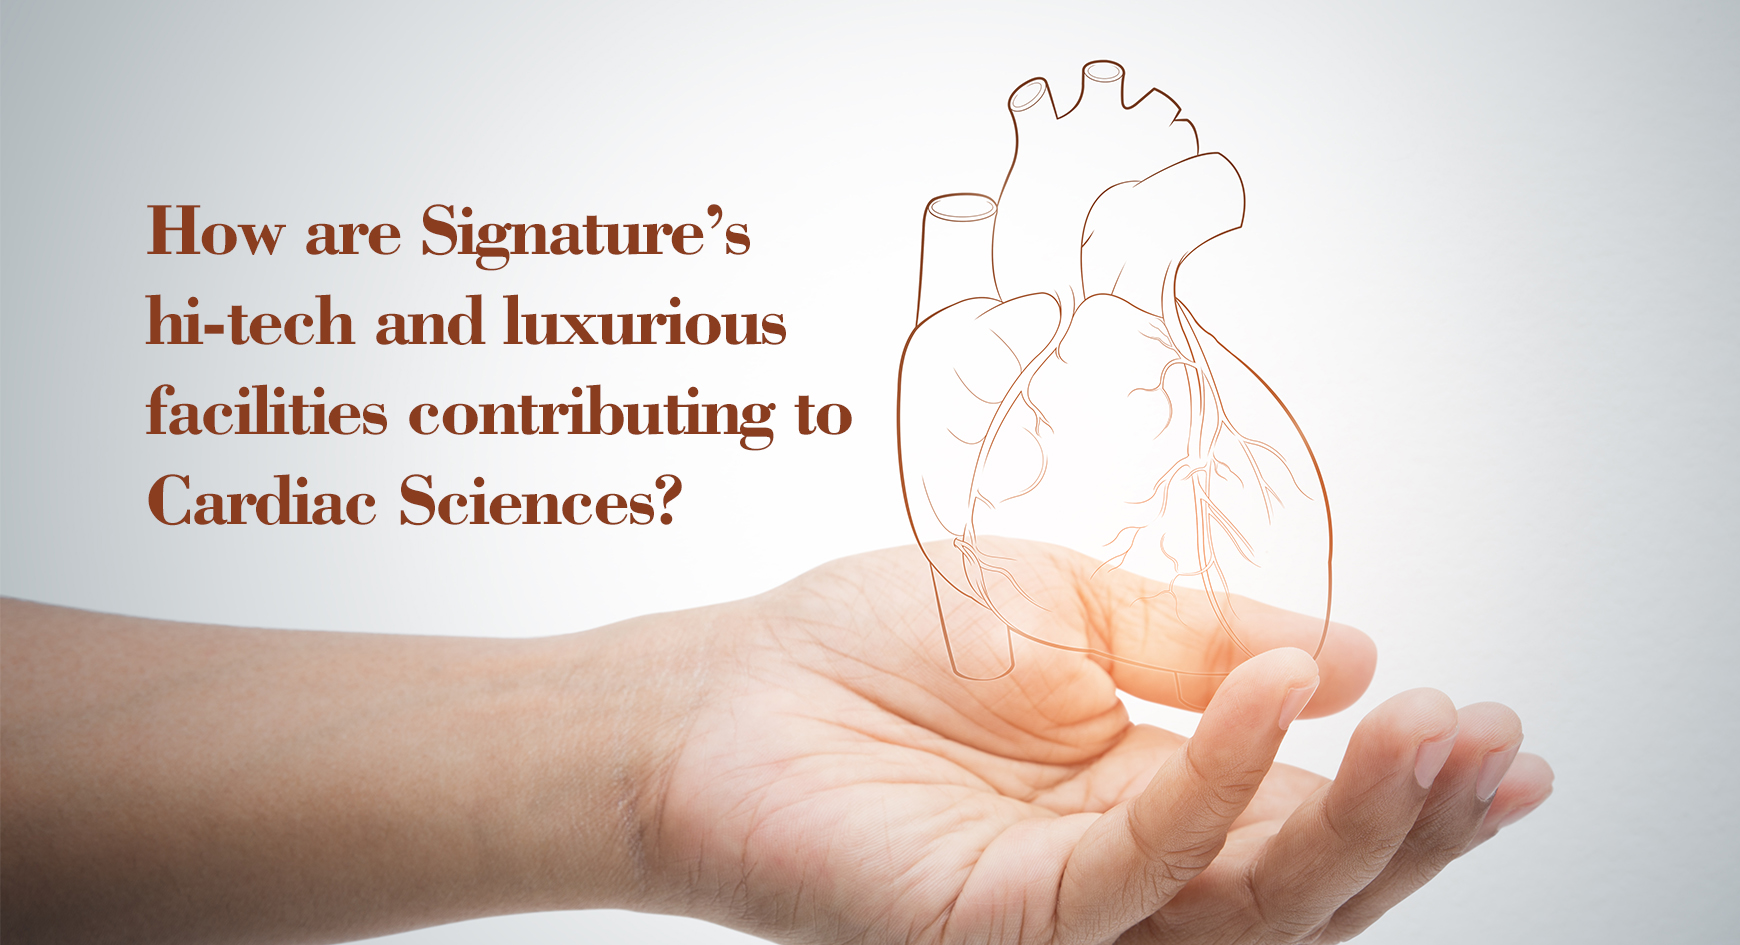 How are Signature's hi-tech and luxurious facilities contributing to Cardiac Sciences?